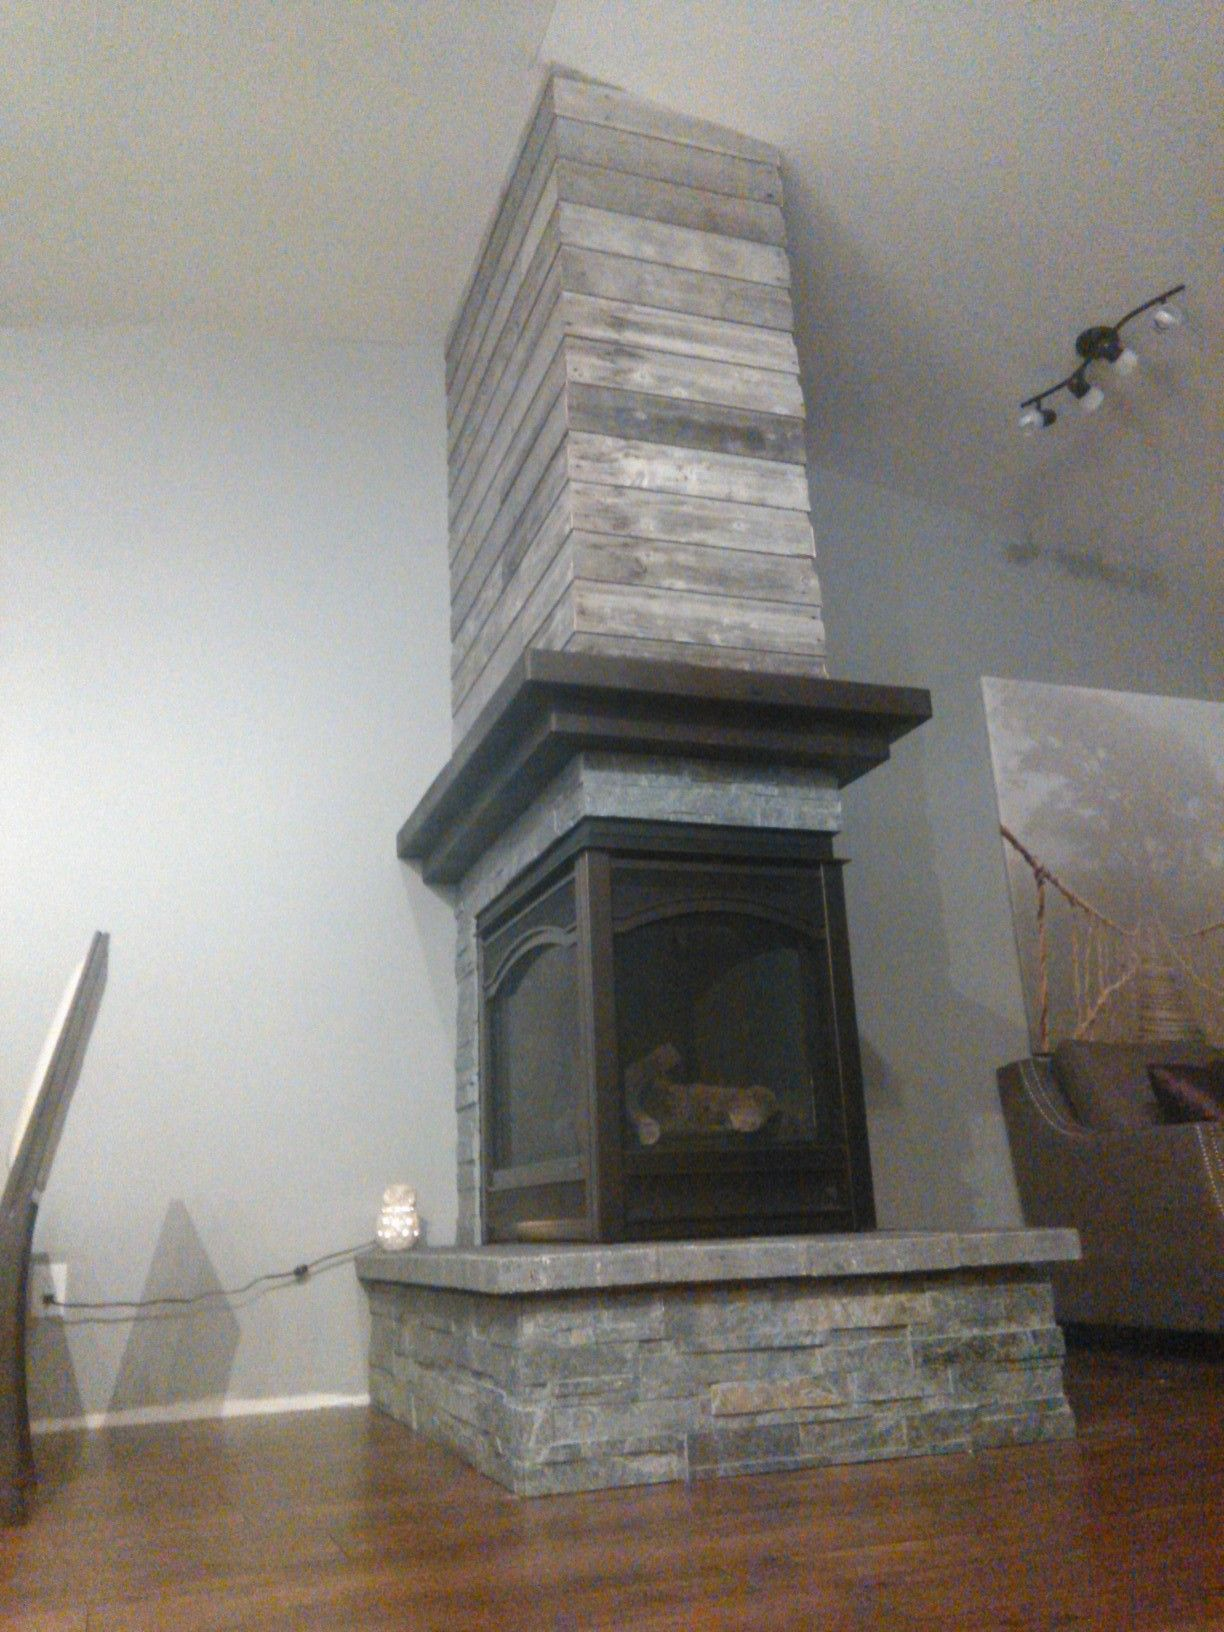 3 Sided Fireplace Barn Board Home Decor In 2019 3